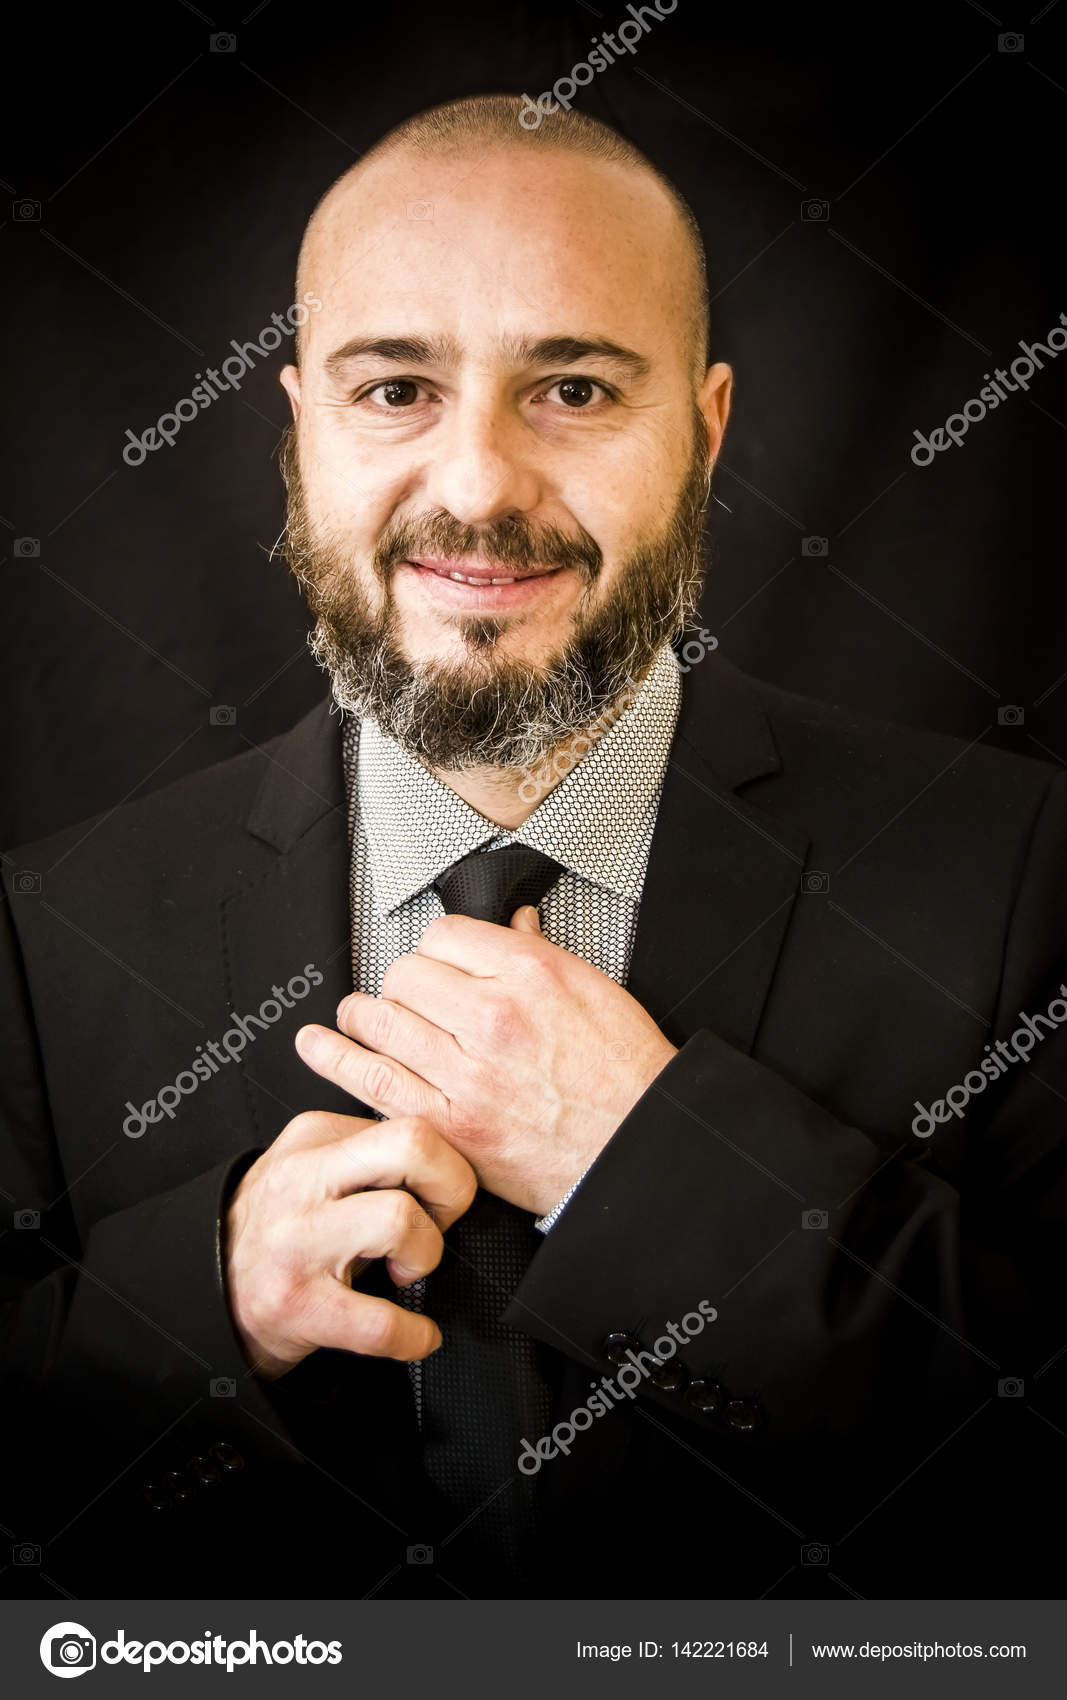 depositphotos_142221684-stock-photo-handsome-bald-man-with-beard.jpg